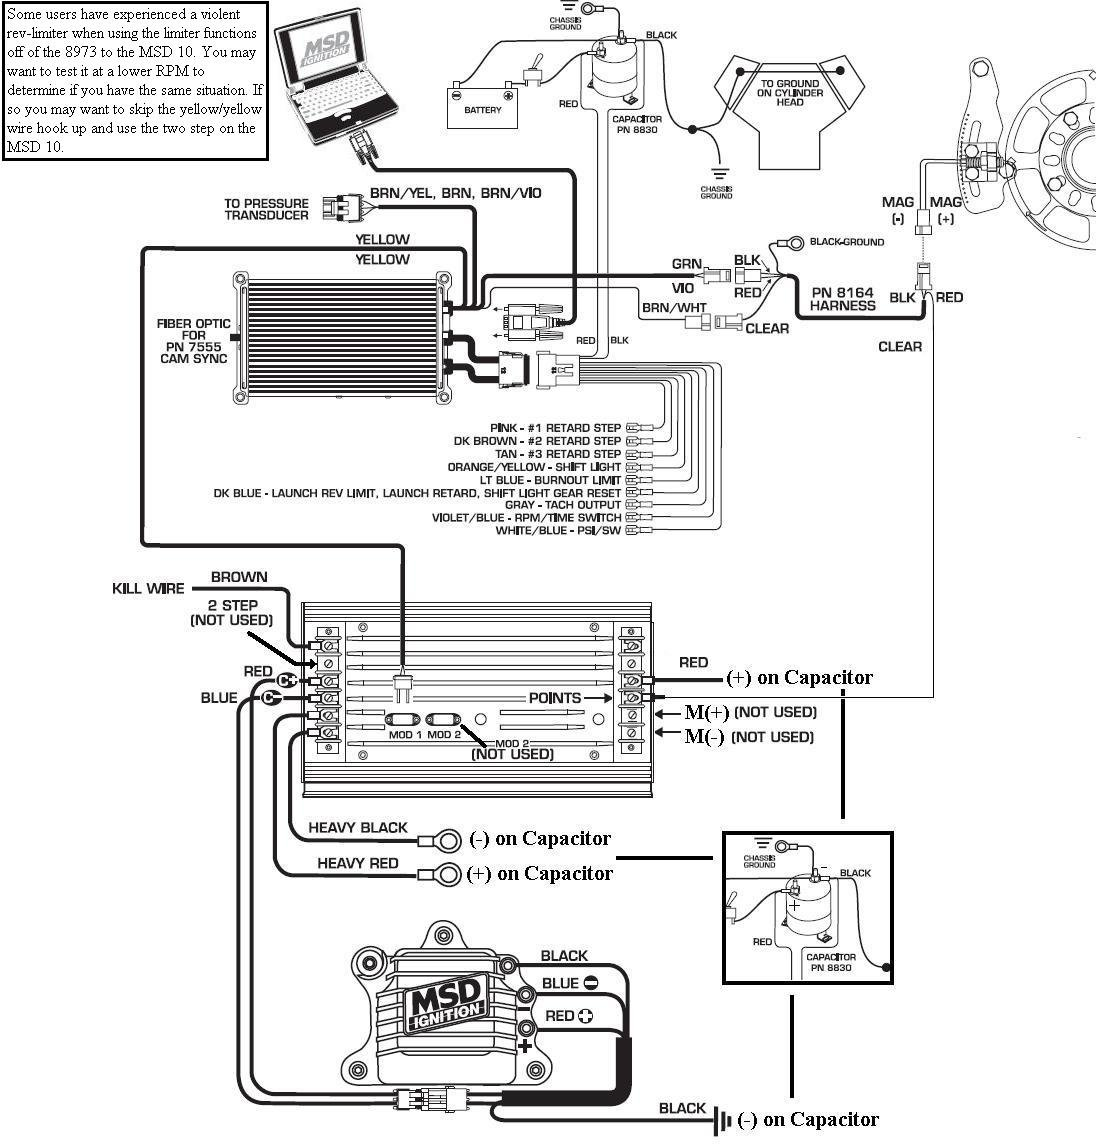 hight resolution of 8973 to msd 10 msd blog msd ford wiring diagrams msd streetfire 5520 wiring diagram